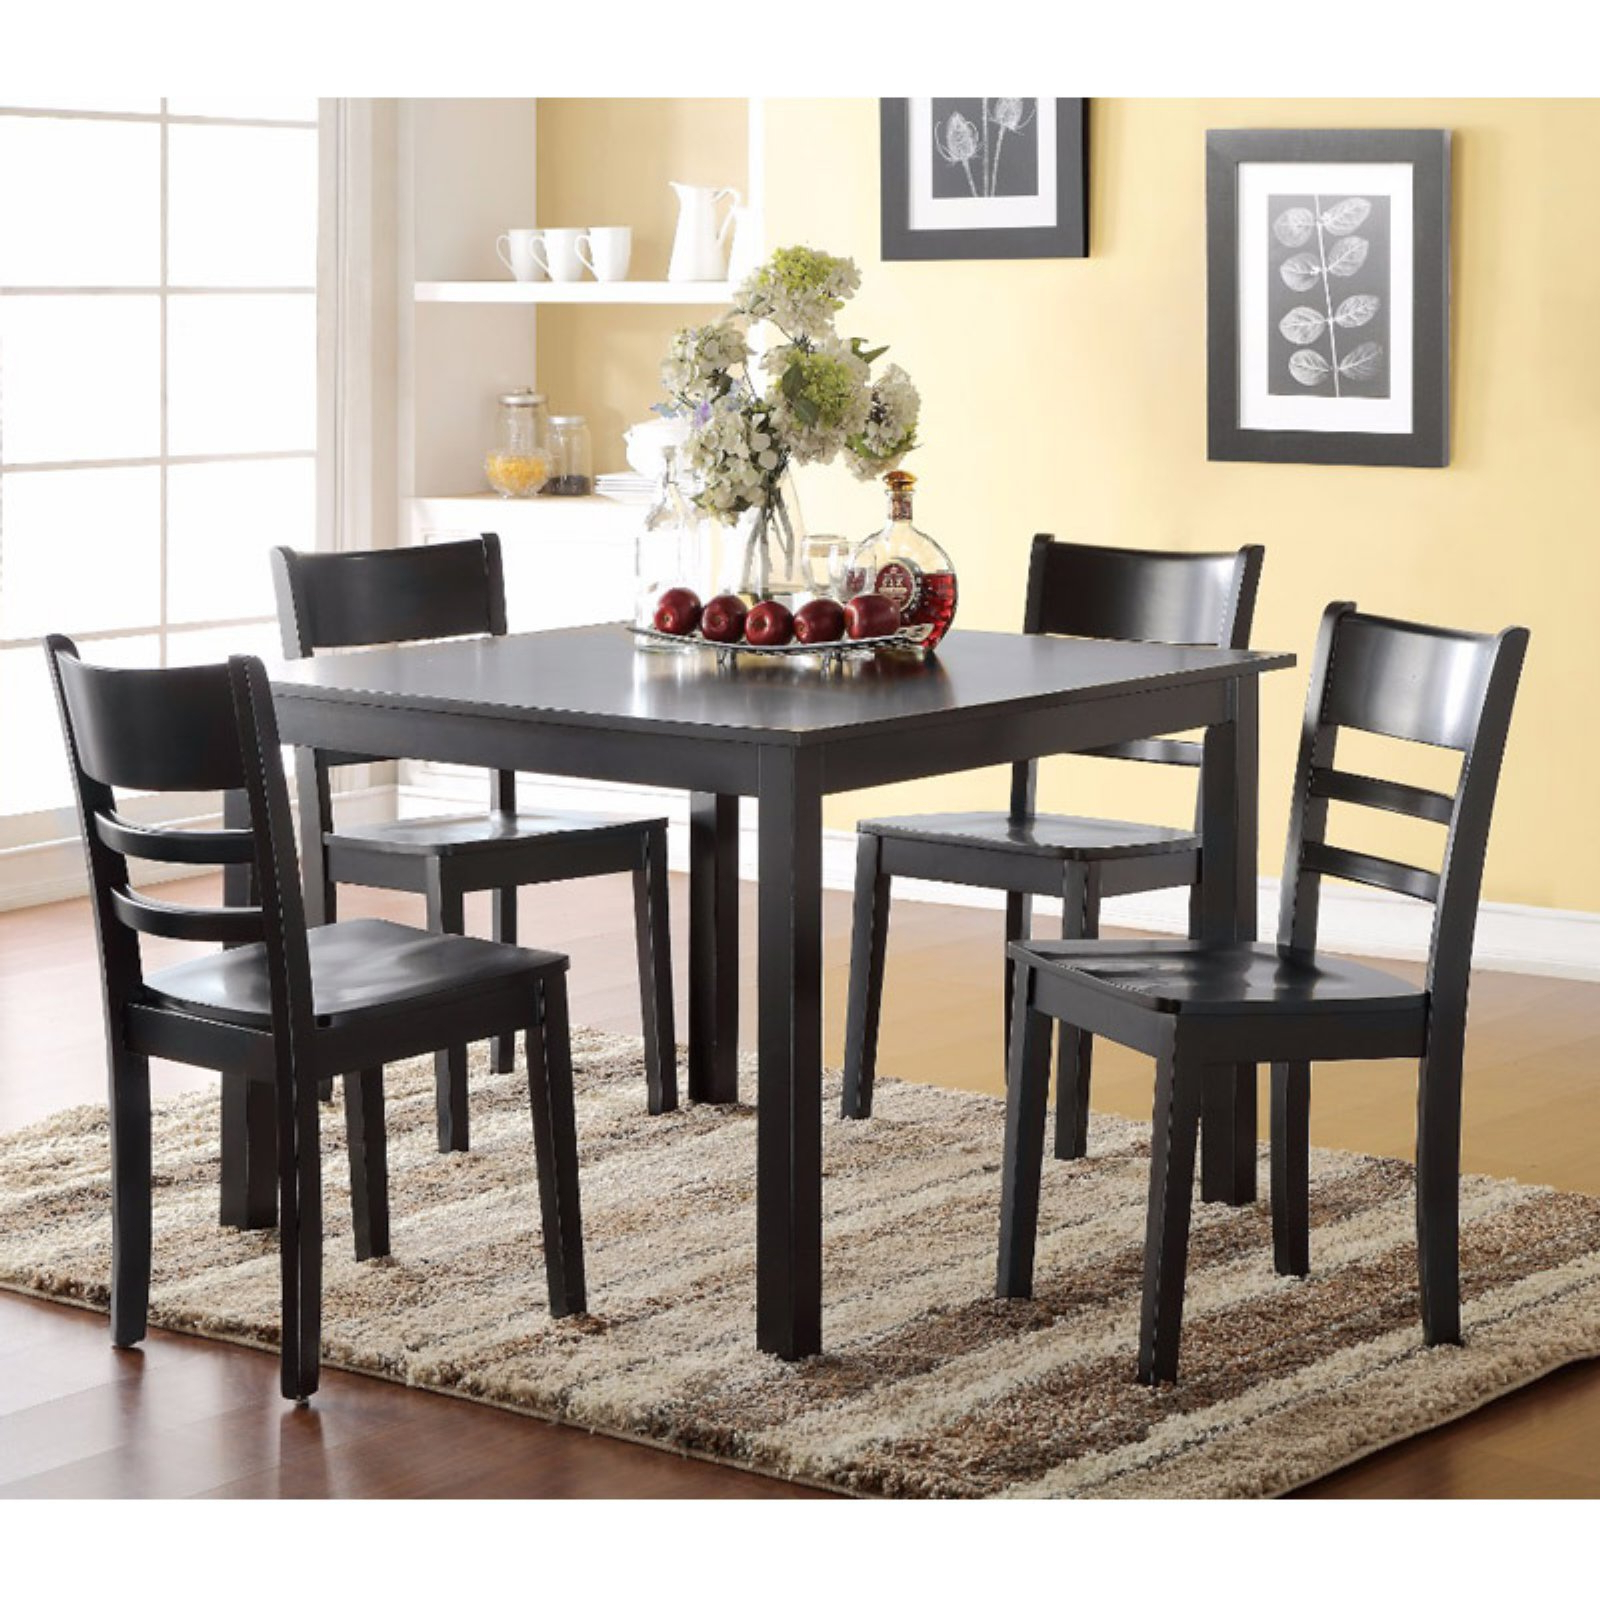 Benzara Gracious 5 Piece Square Dining Table Set In 2019 In Popular Transitional 4 Seating Double Drop Leaf Casual Dining Tables (View 7 of 30)